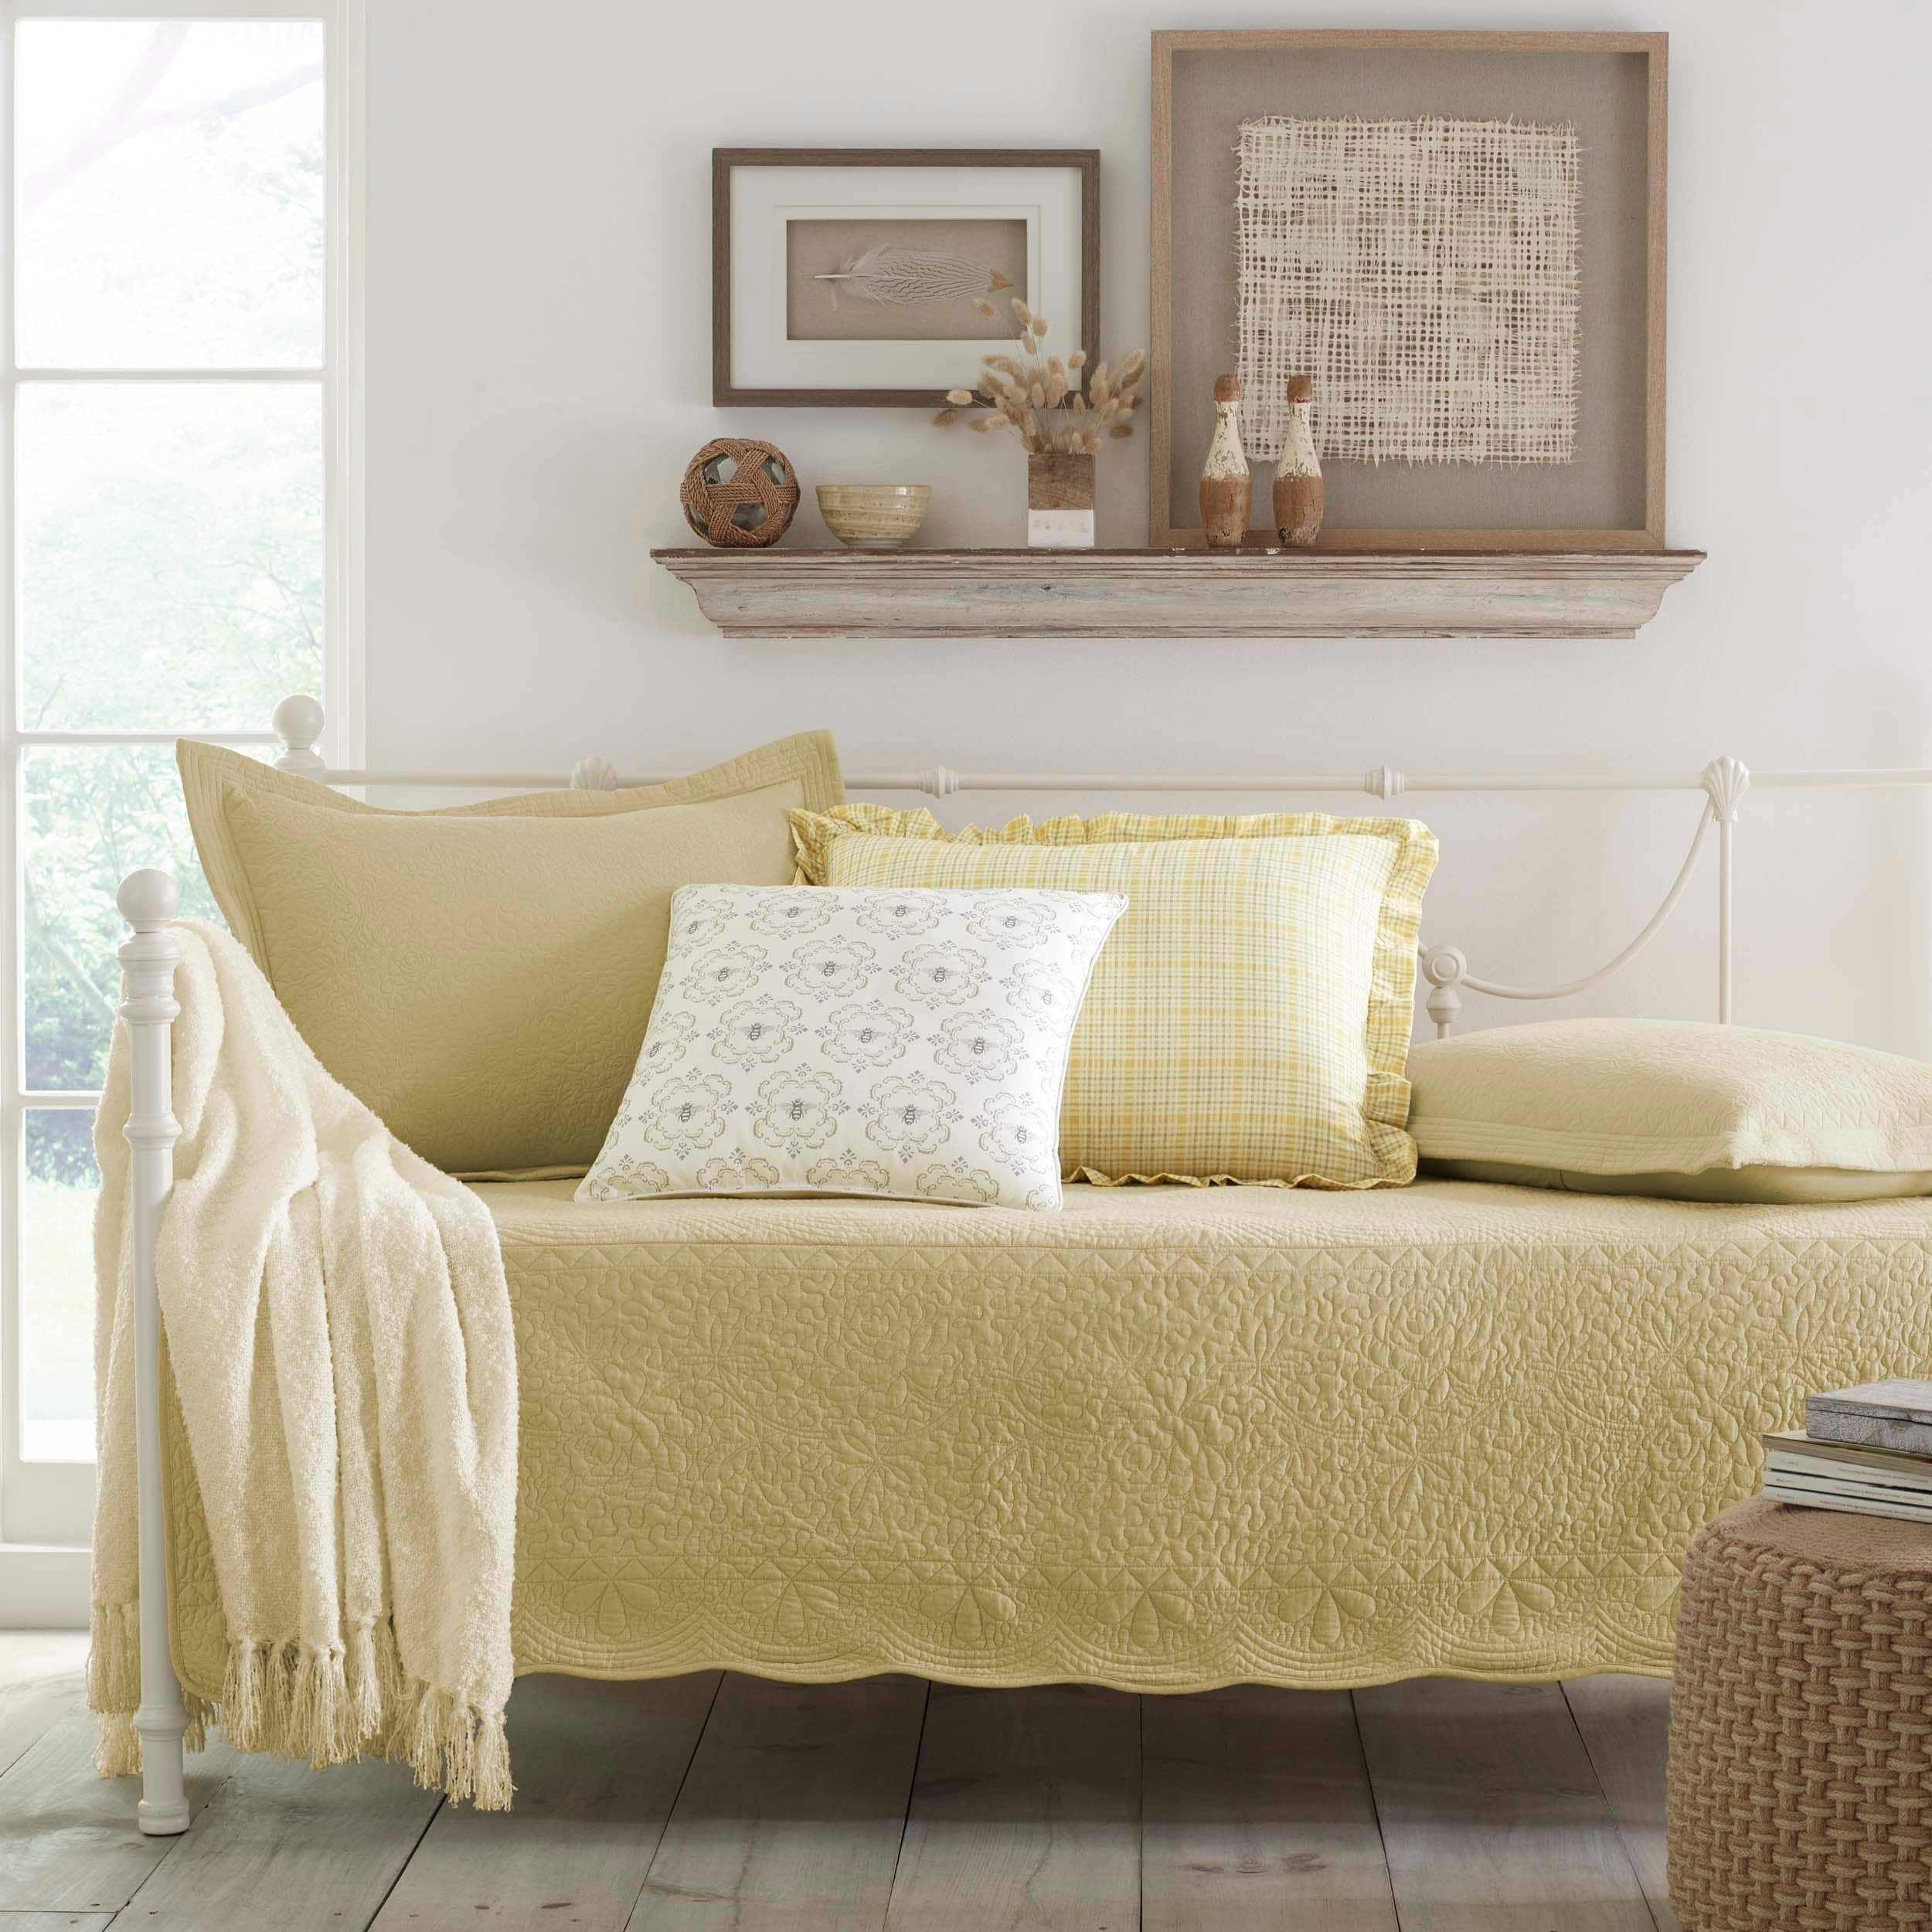 Trellis Maize 5-piece Daybed Set Yellow Damask Embroidered Paisley Solid Color Cotton Bedskirt Included - Diamond Home USA